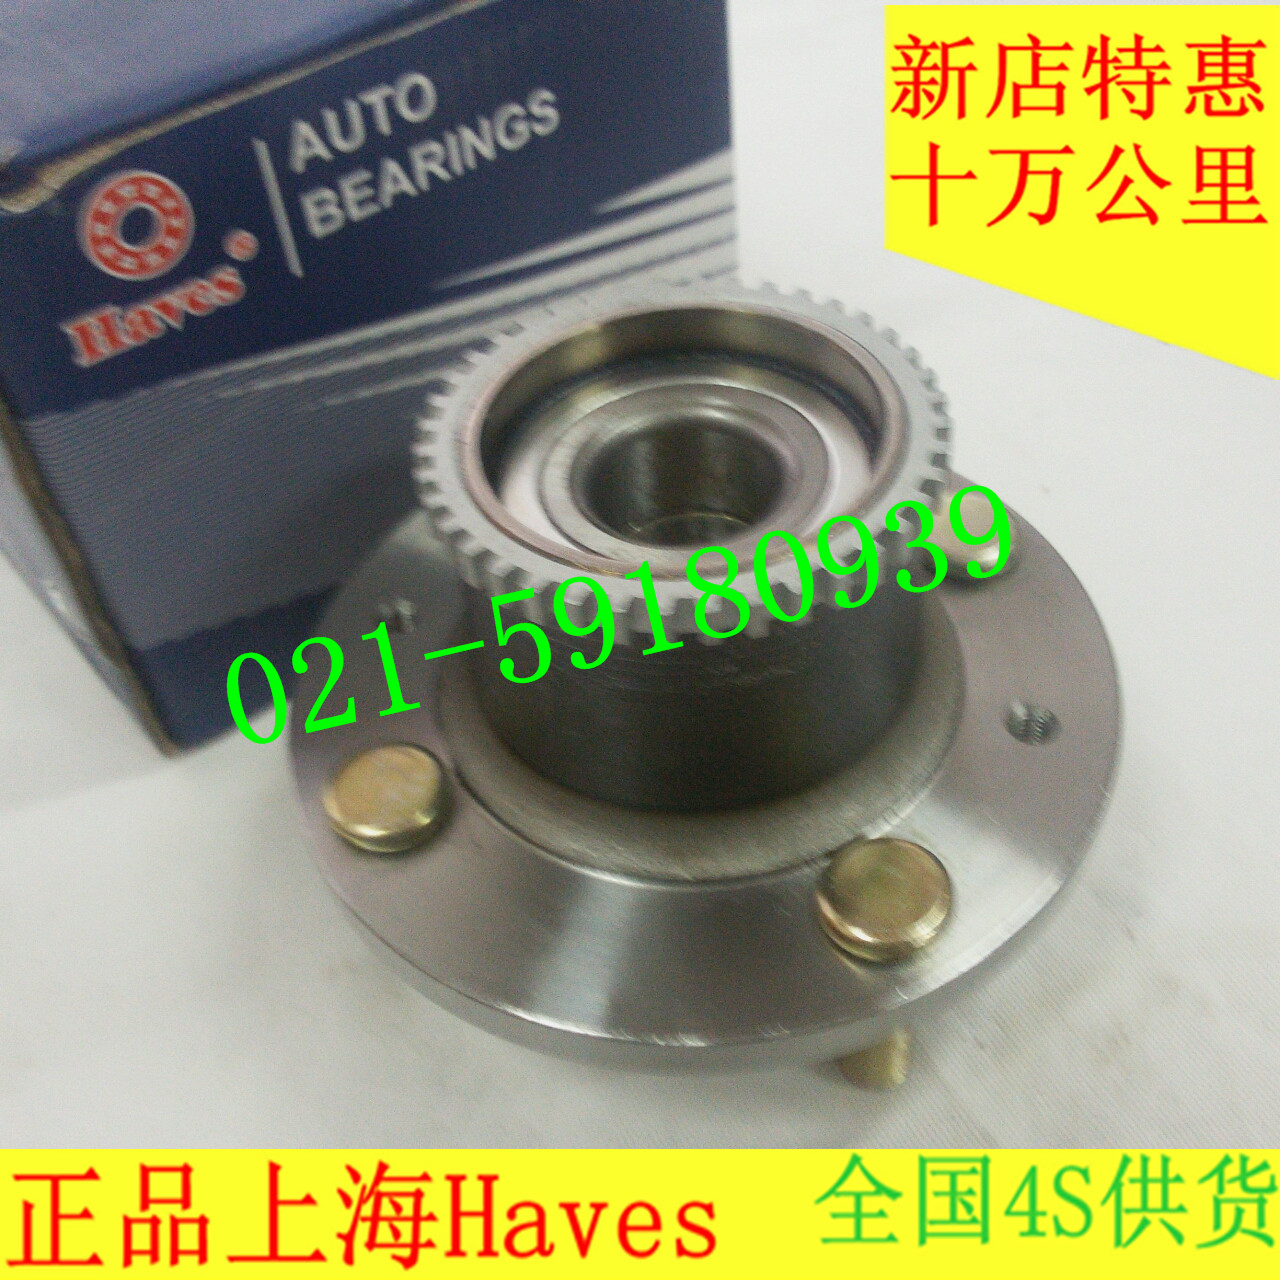 Haves mitsubishi outlander wing god lingshuai ling yue v3/v5 lancer cheetah soar hafeisaima rear wheel bearing front wheel